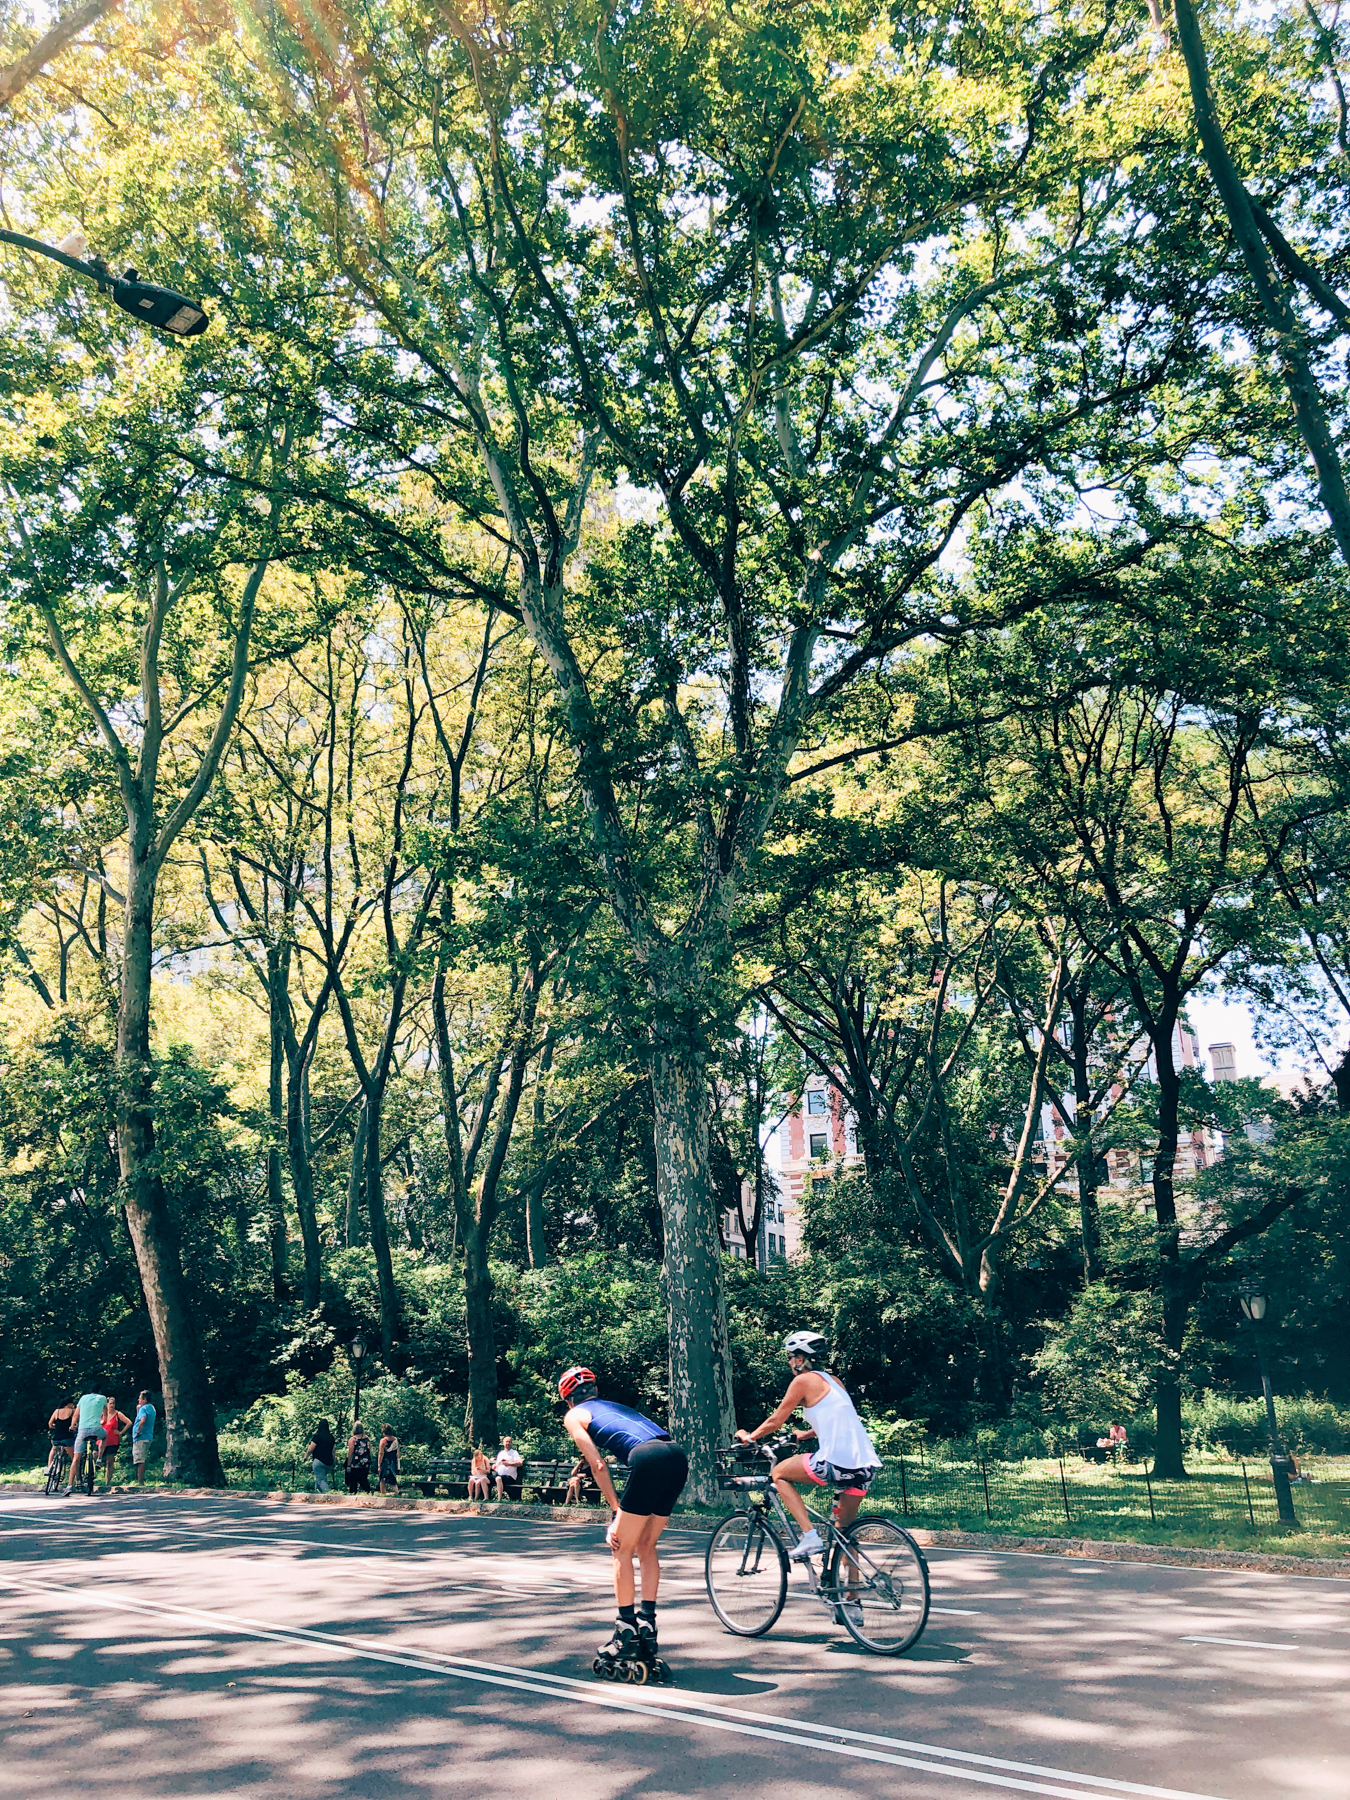 Bikers and Rollerbladers in Central Park